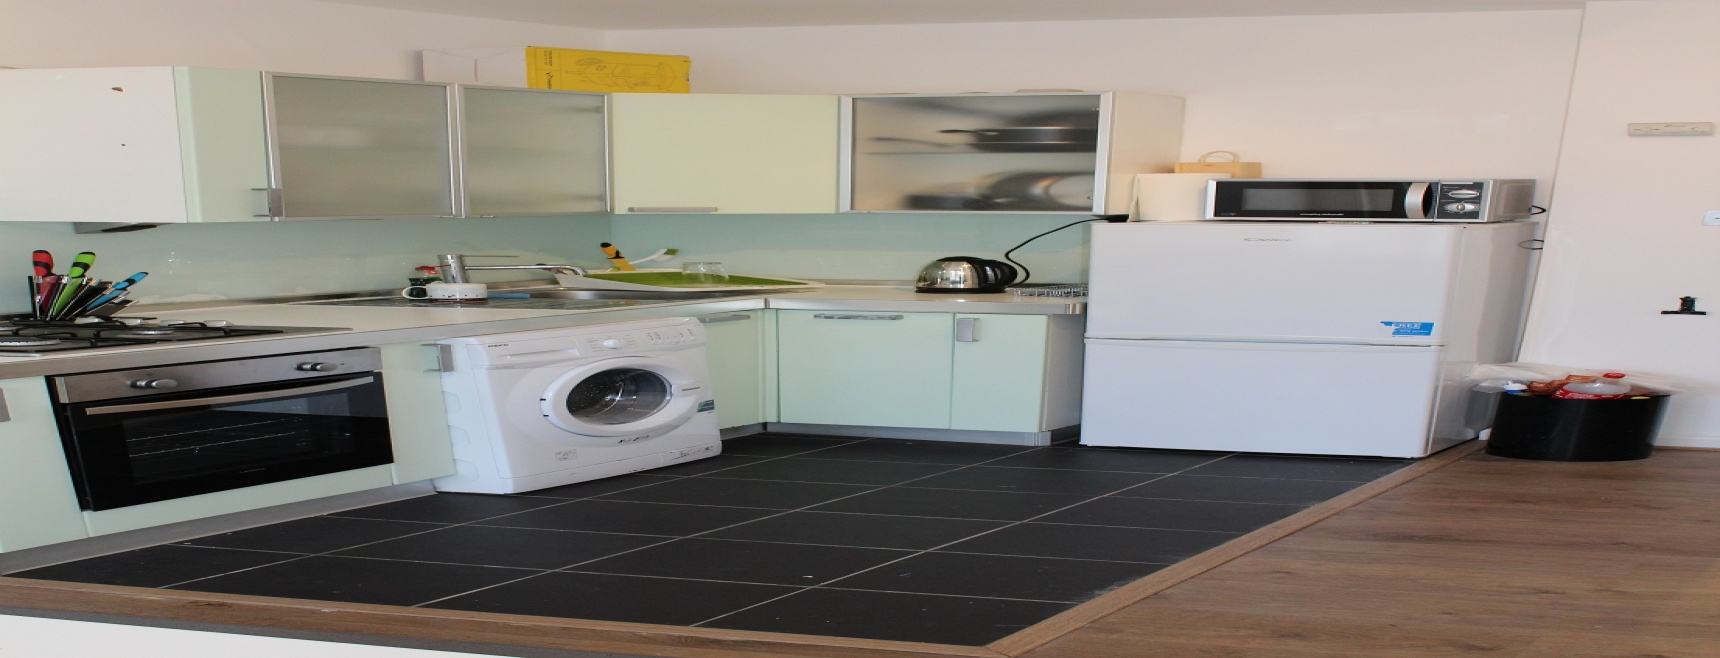 2 bedroom flat to let in Vauxhall - Listing ID 1025